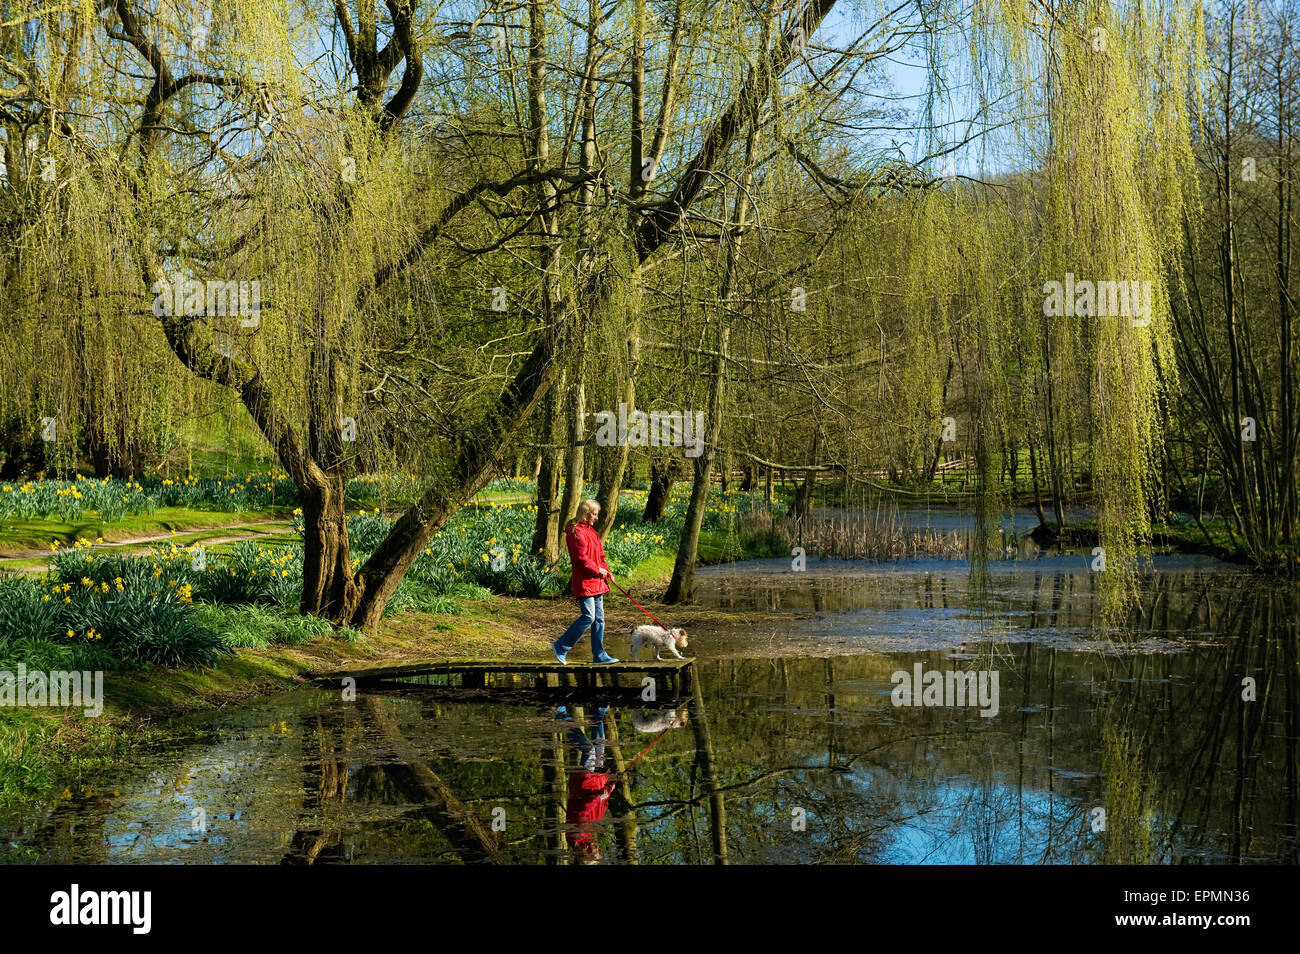 A woman and dog on a jetty on a lake, under a large weeping willow tree. - Stock Image